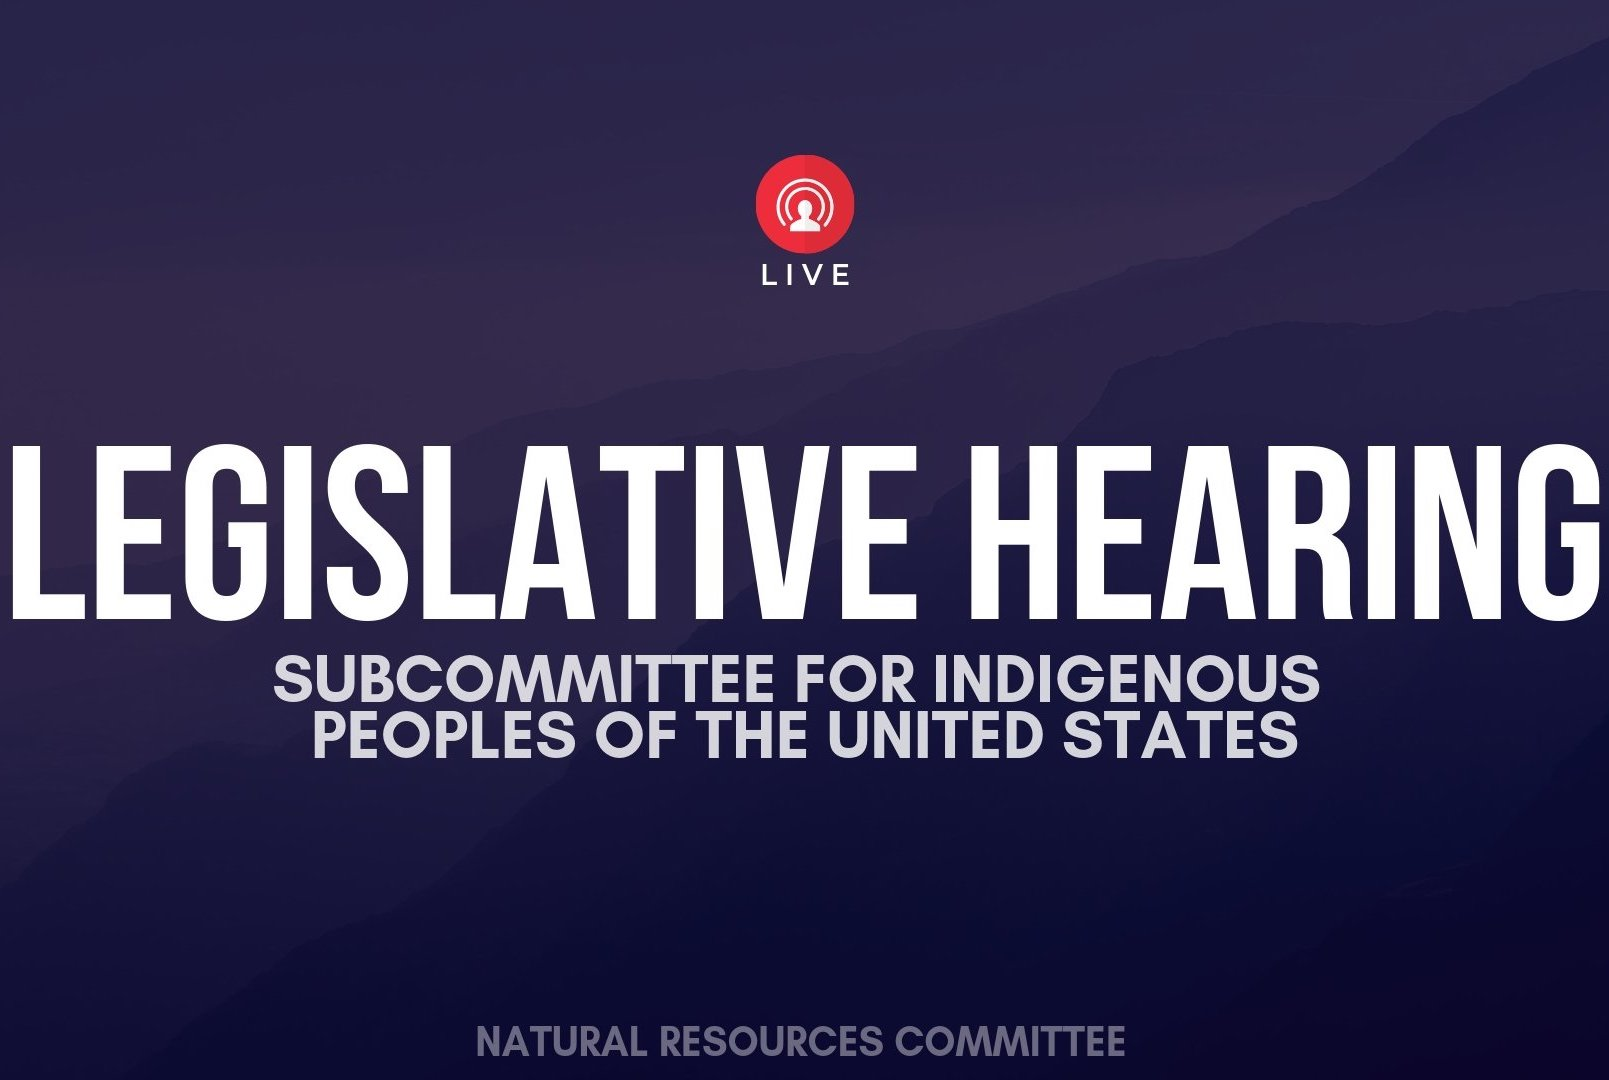 AUDIO: House Subcommittee for Indigenous Peoples of the United States hearing